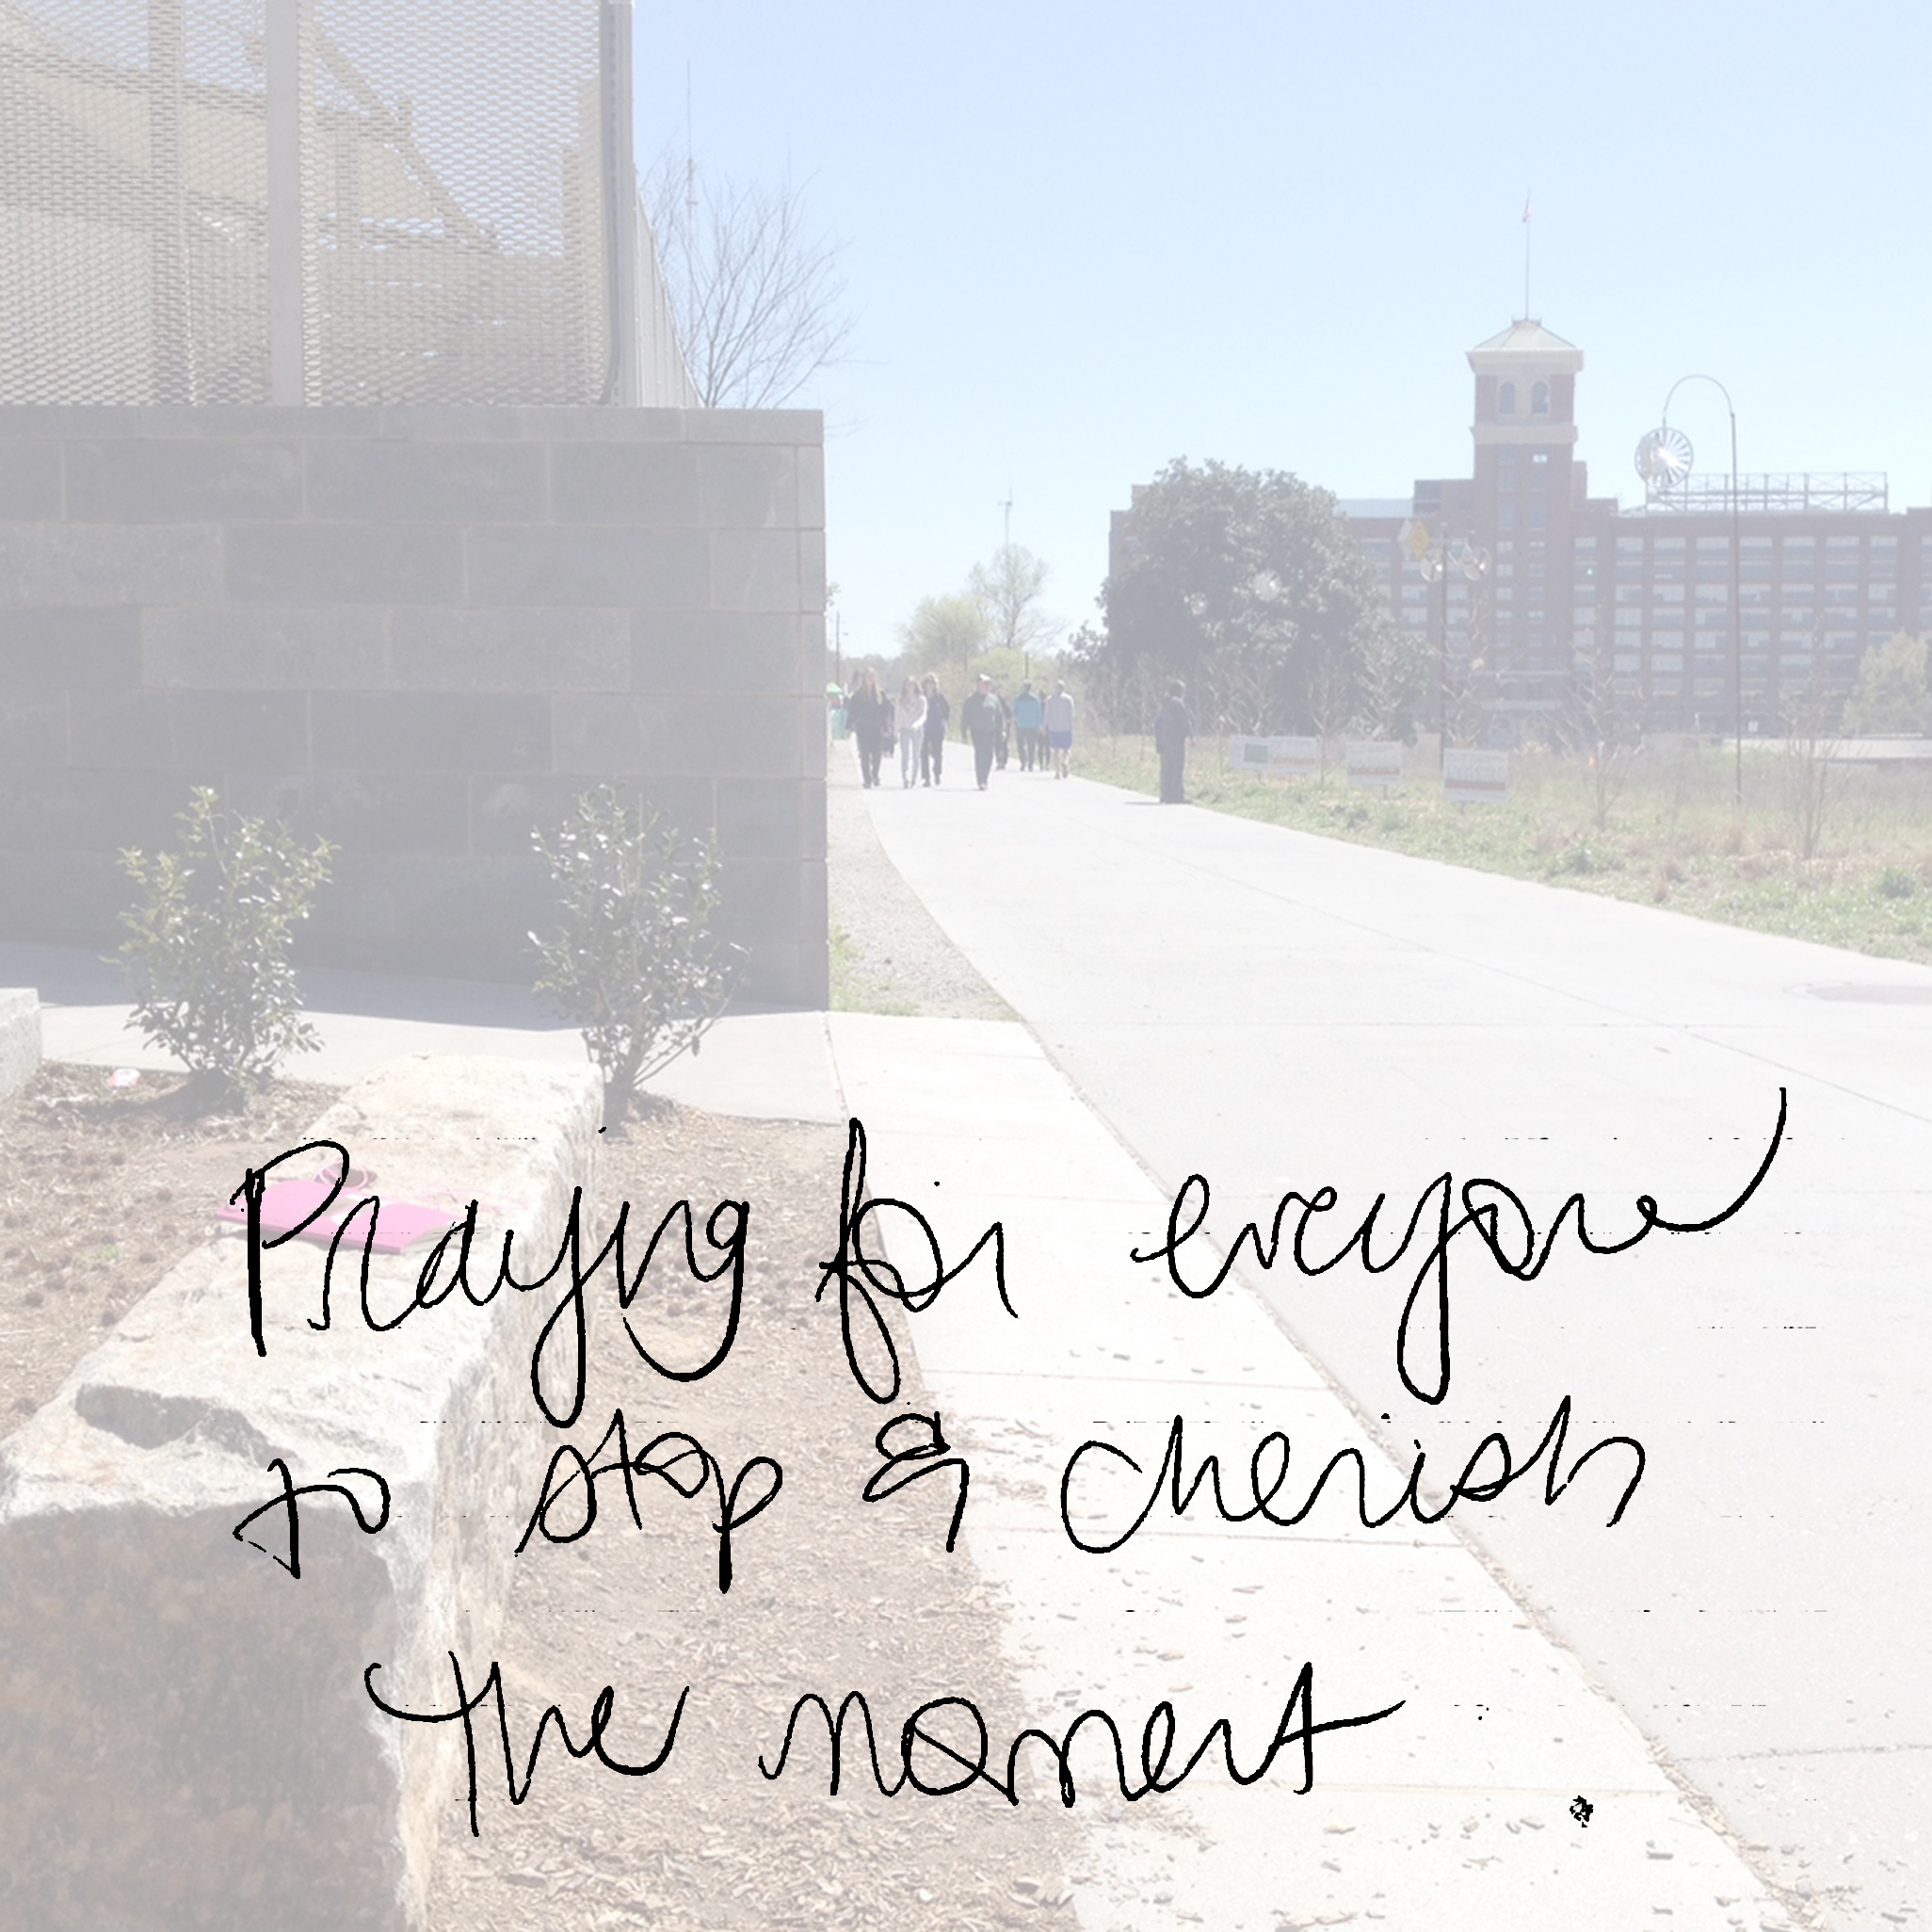 Praying for everyone to stop & cherish the moment.